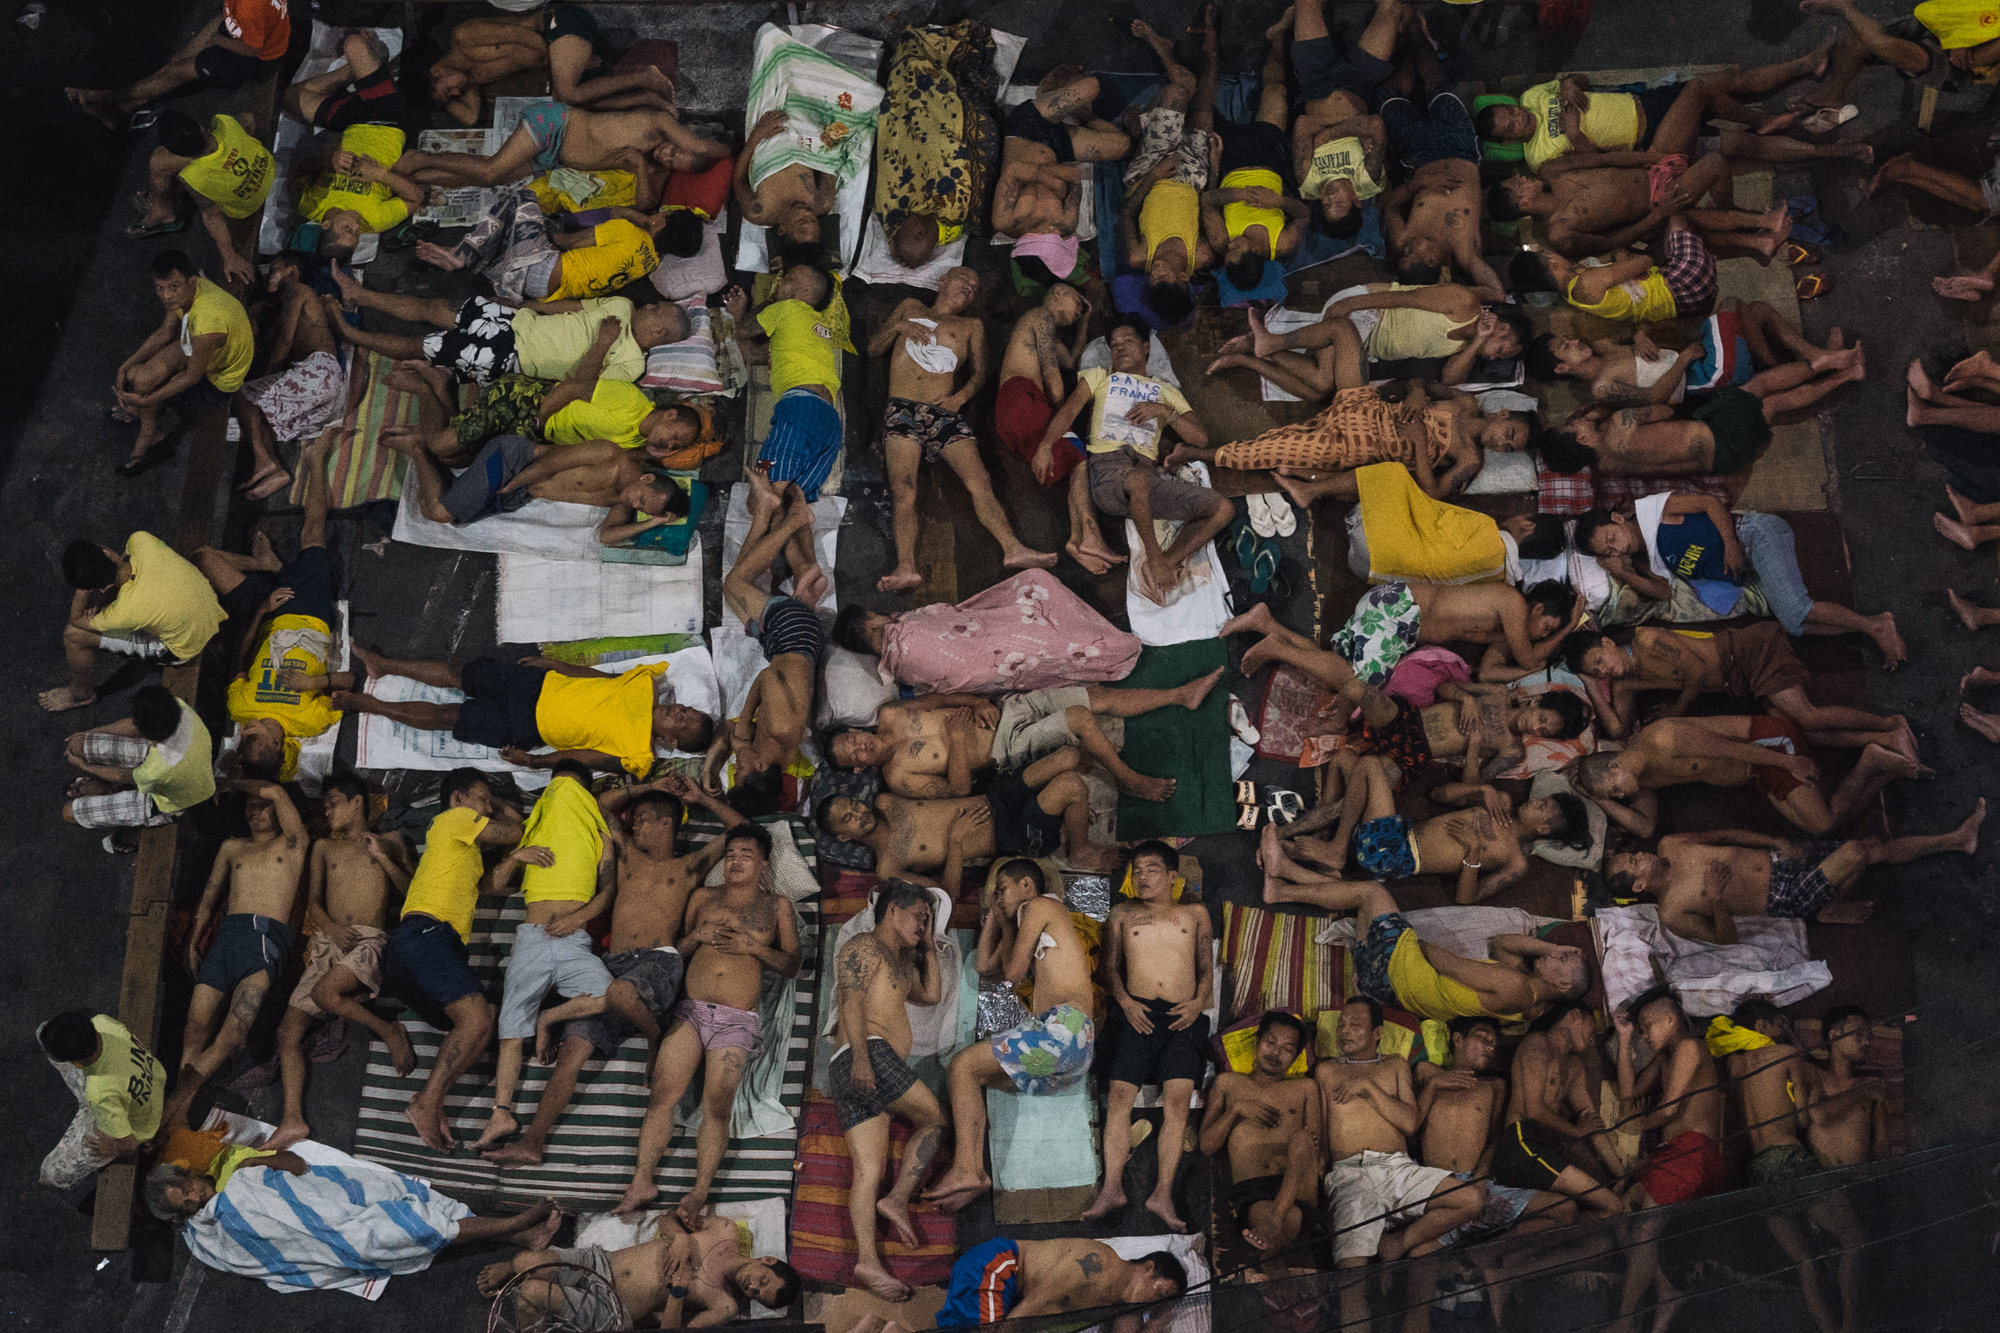 Men are seen sleeping inside a crowded jail on Wednesday, December 14, 2016 in Quezon City, Metro Manila, Philippines. As more men are arrested for drug use under Rodrigo Duterte's 'War on Drugs,' jails become congested, and friends and families of inmates report men refusing to walk free in fear of being killed by the police.